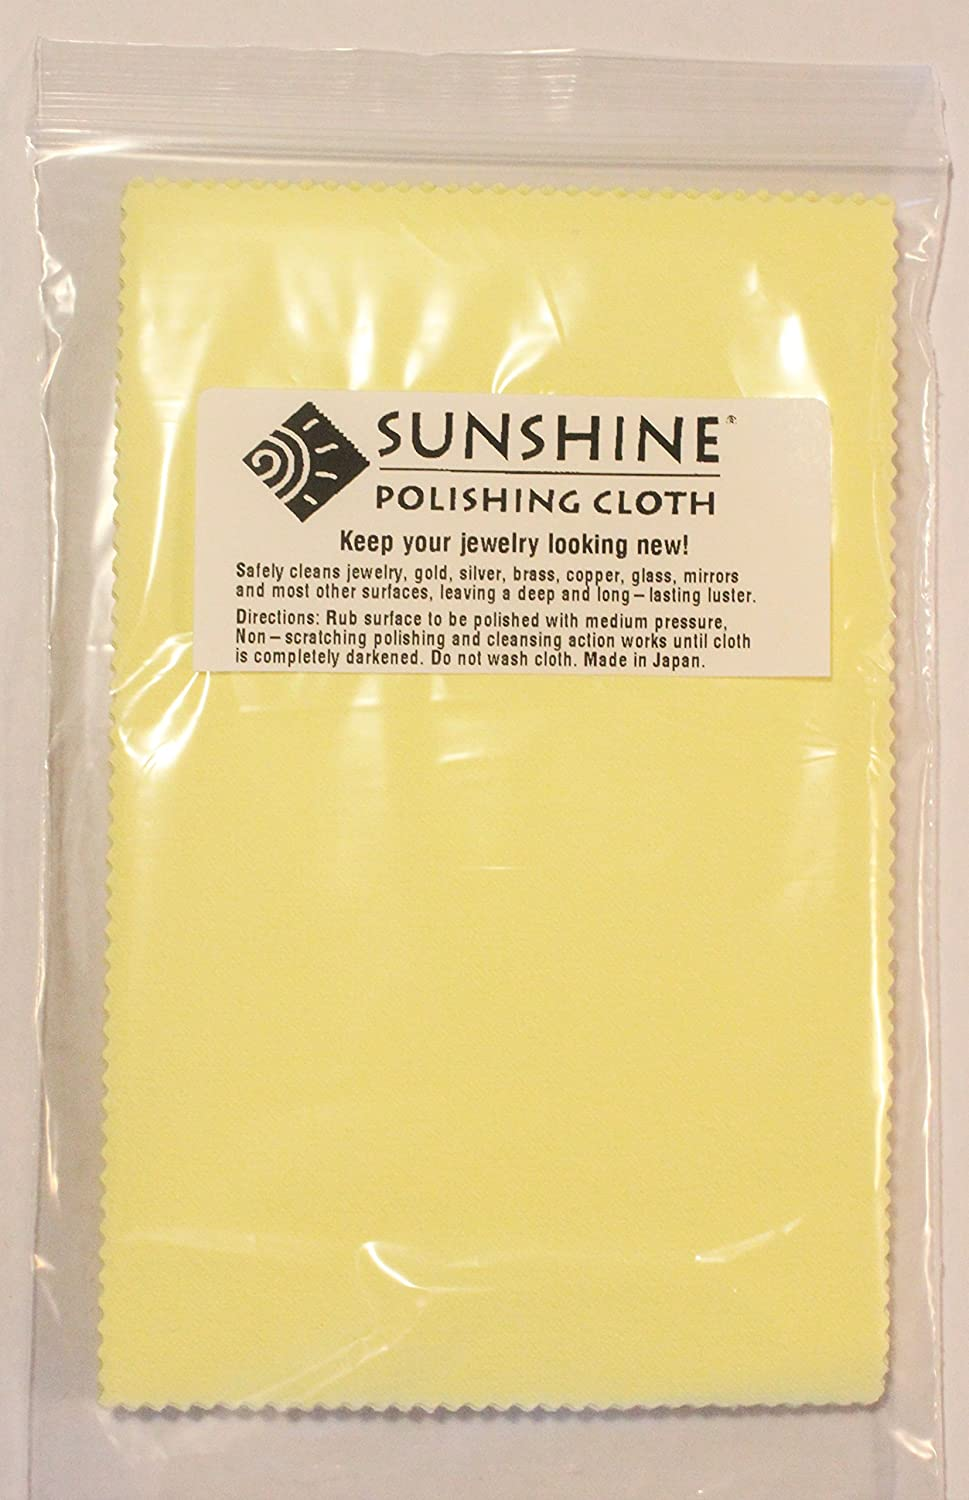 Gold 10 Sunshine Polishing Cloths for Sterling Silver Brass and Copper Jewelry in Envelopes